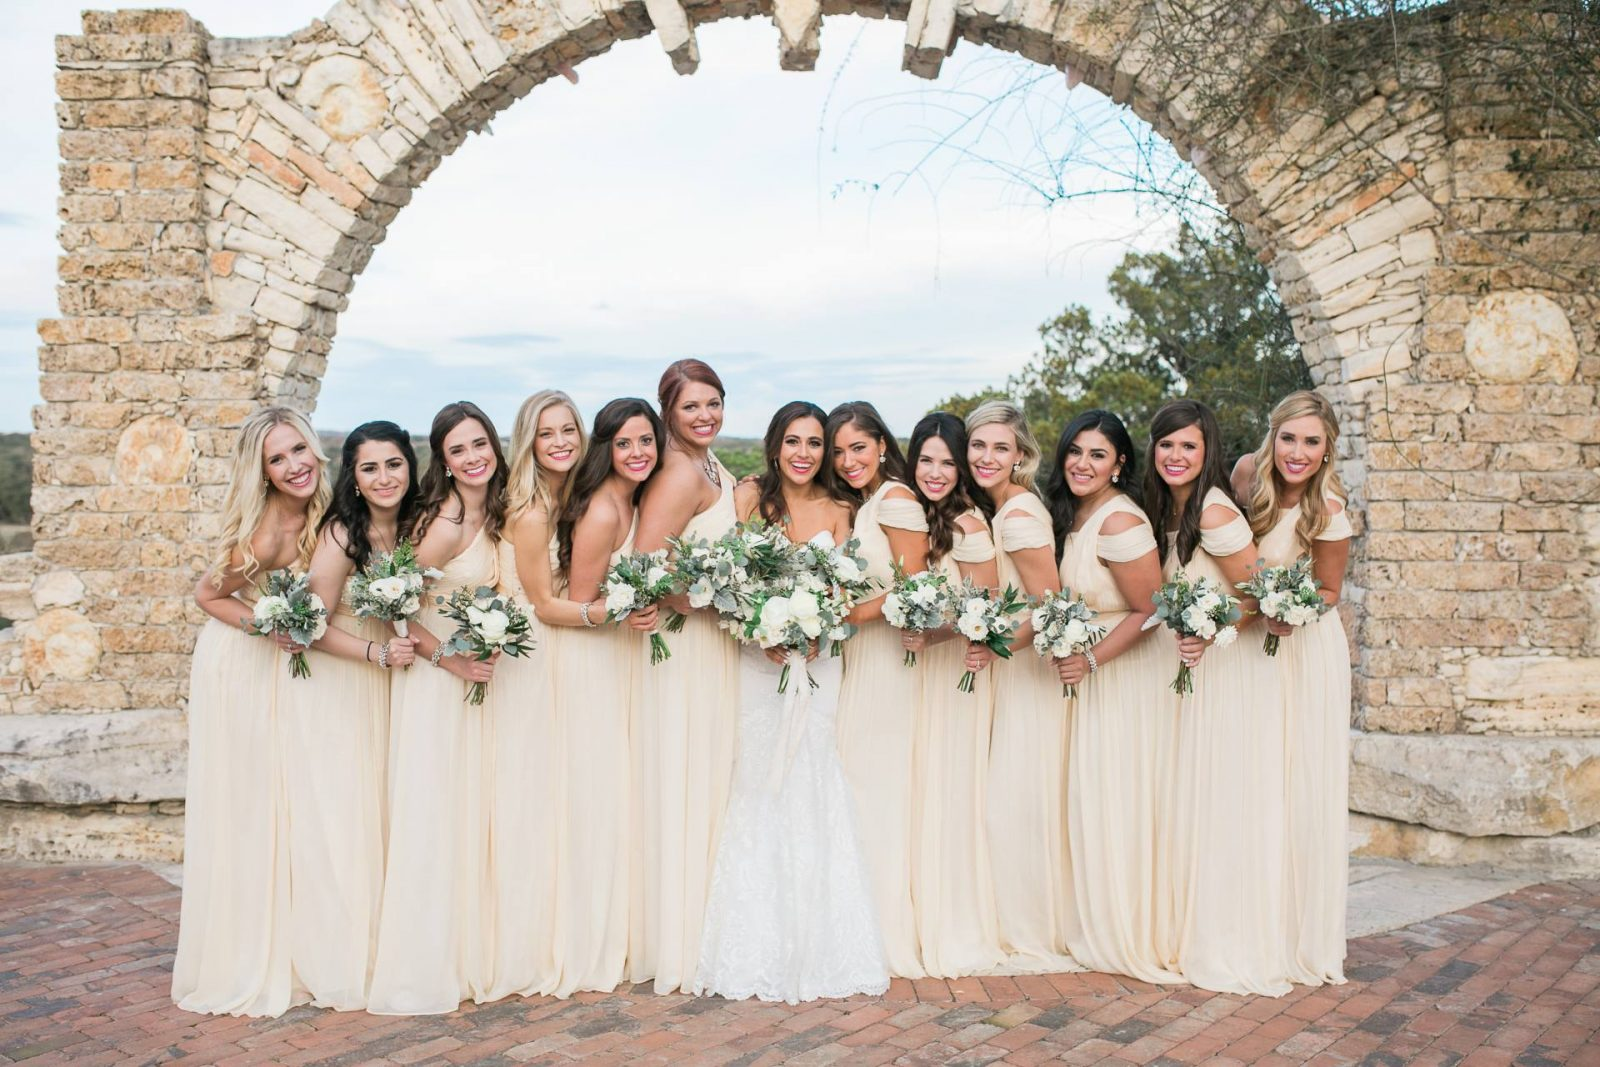 The wedding edit how to choose your bridesmaid dresses jasmine the wedding edit how to choose your bridesmaid dresses ombrellifo Gallery